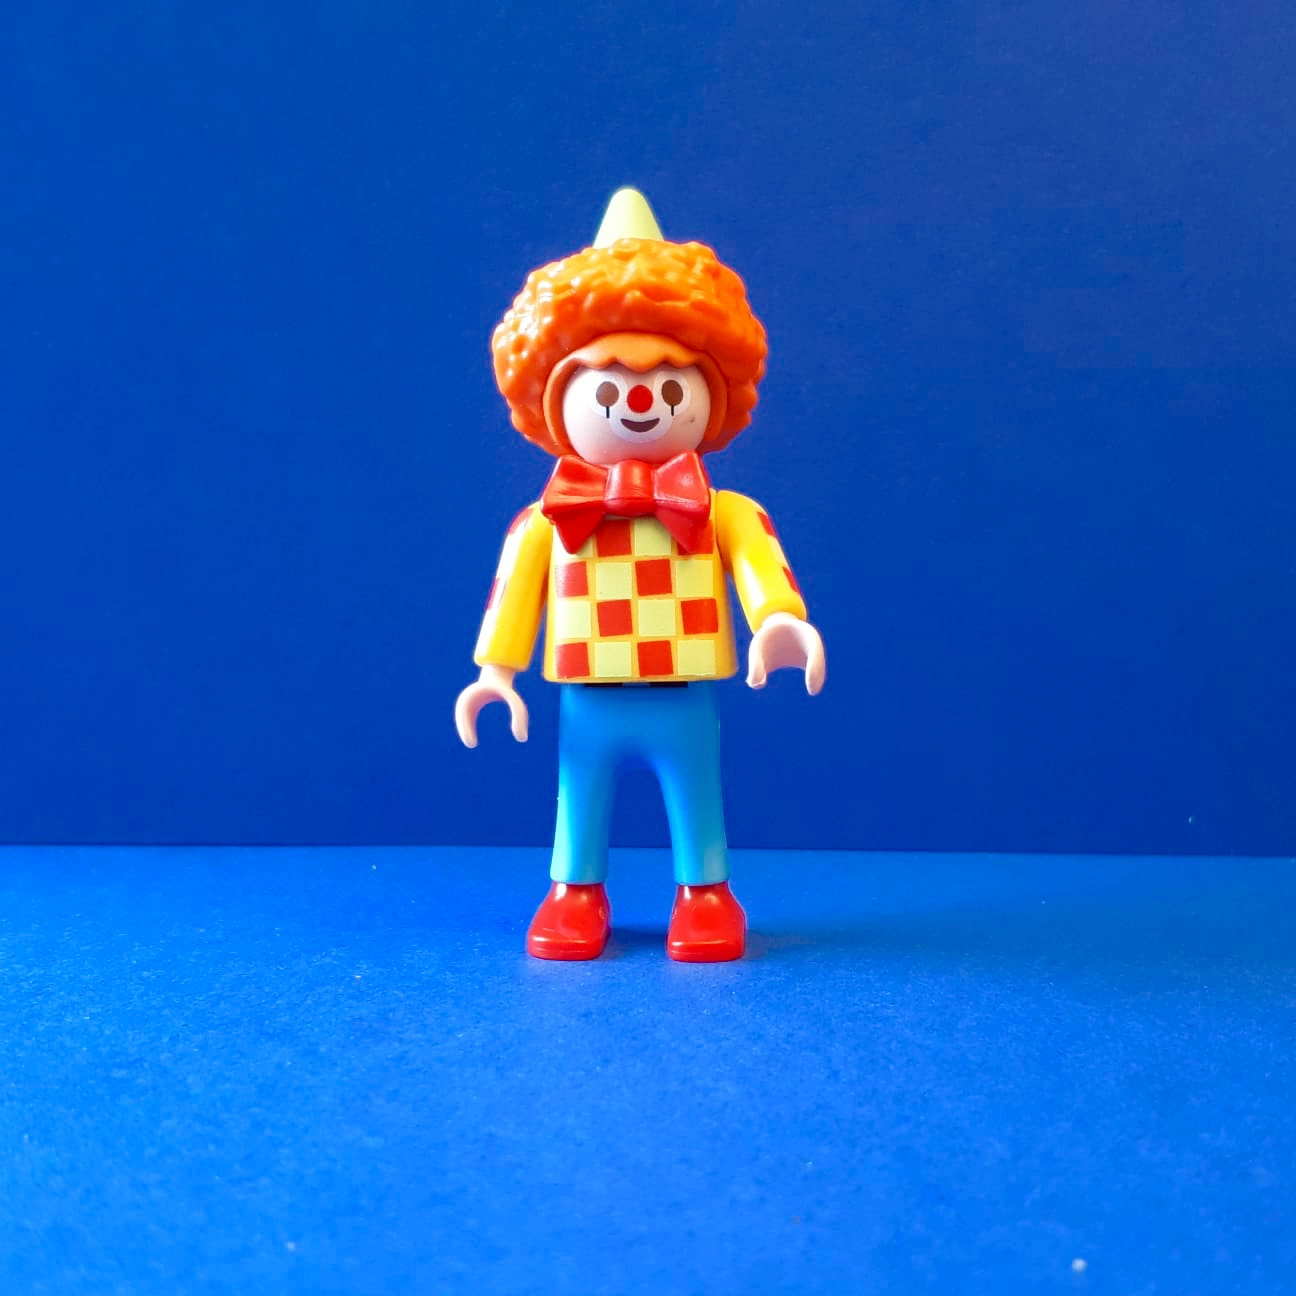 clown-jongetje